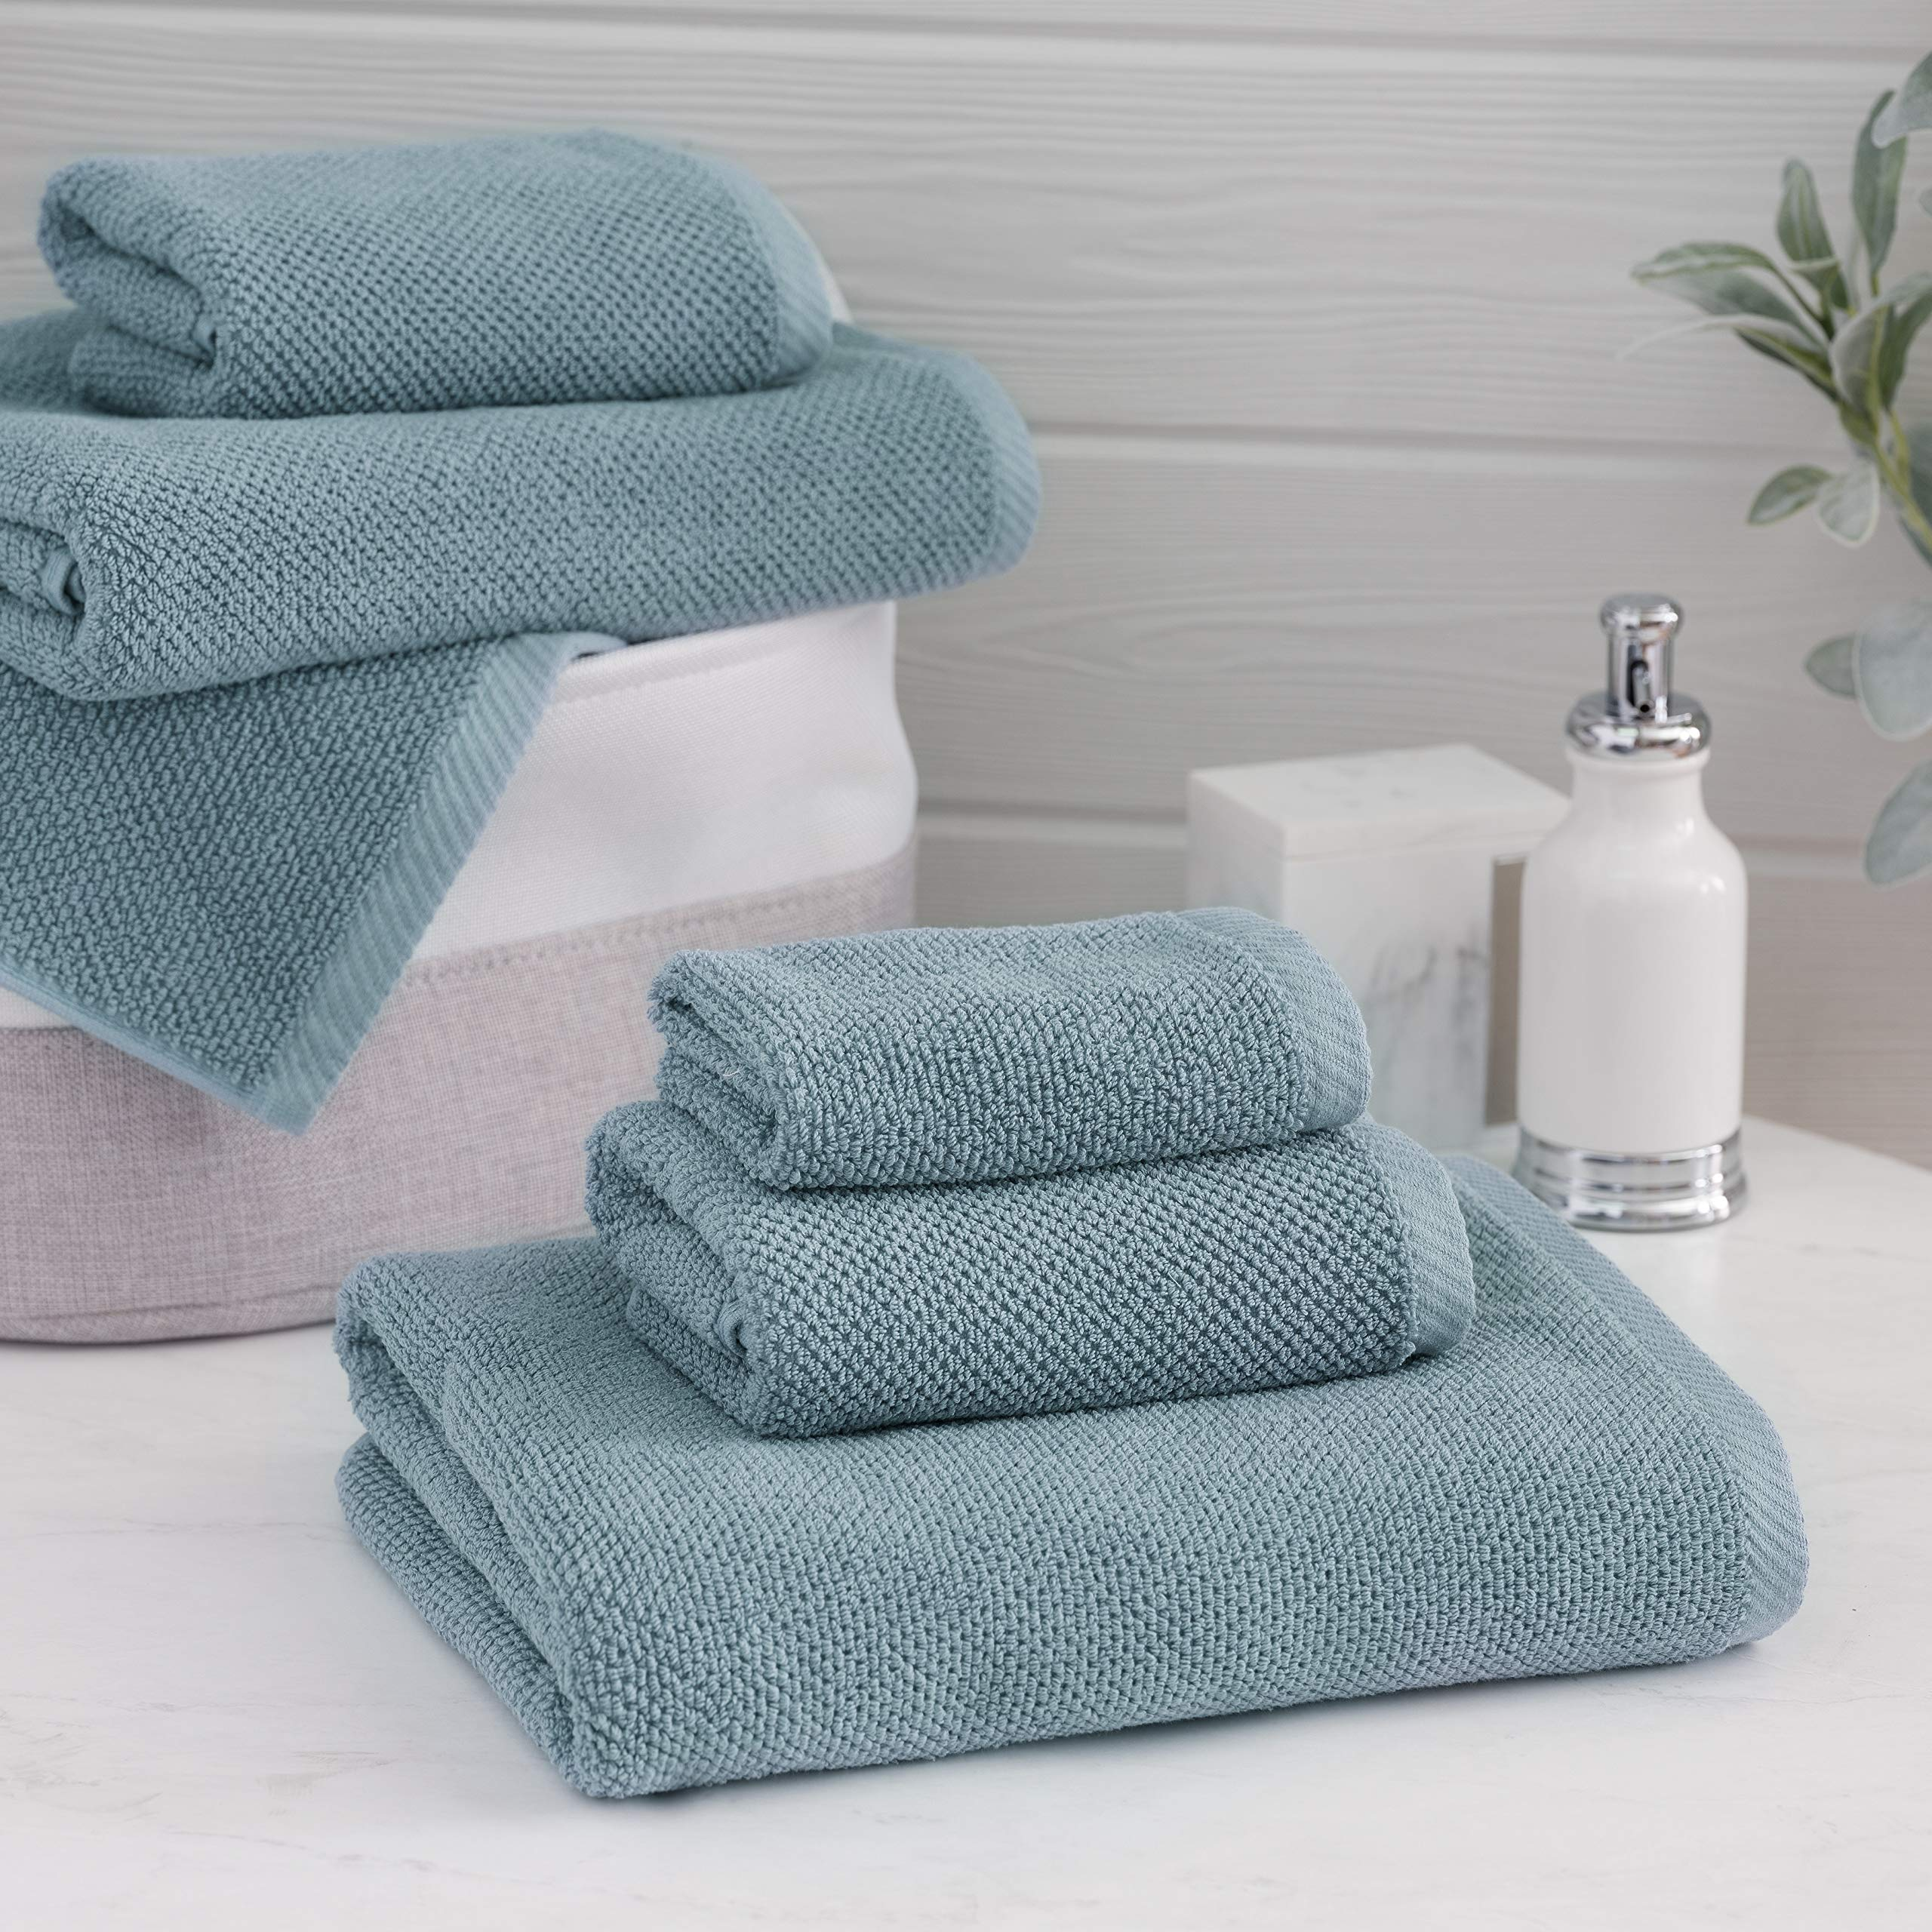 Welhome Franklin 100% Cotton Textured Towel (Dusty Blue) - Set of 6 - Highly Absorbent - Combed Cotton - Durable - Low Lint - 600 GSM - Machine Washable : 2 Bath Towels - 2 Hand Towels - 2 Wash Towels by Welhome